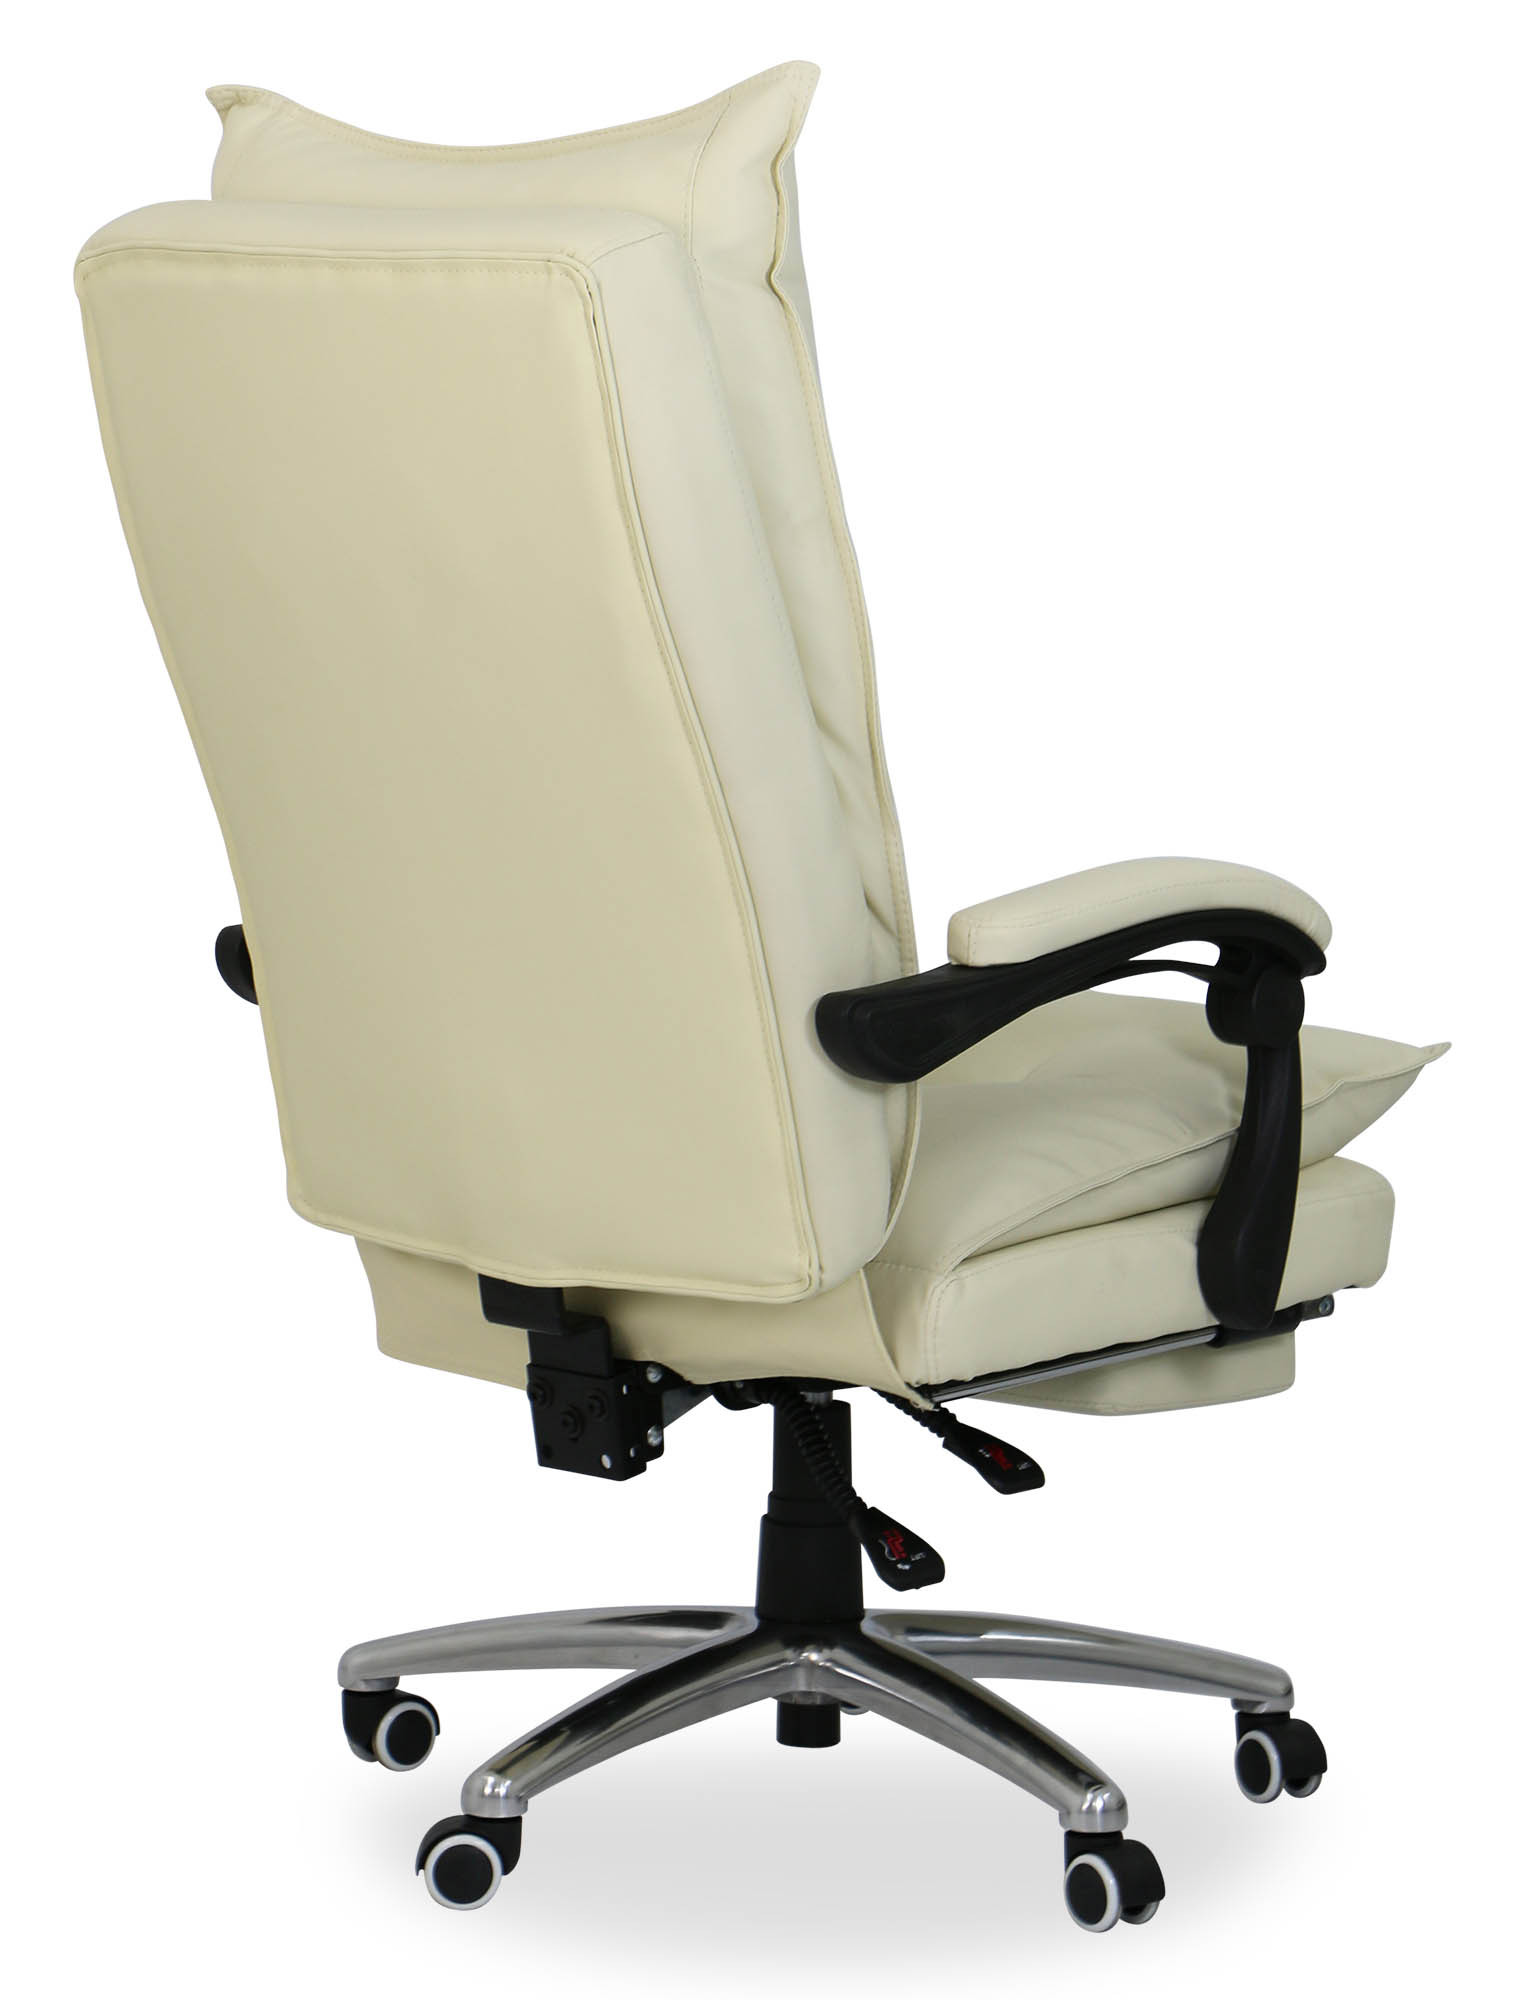 comfort office chair. Deluxe Pu Executive Office Chair (Beige) | Furniture \u0026 Home Décor FortyTwo Comfort